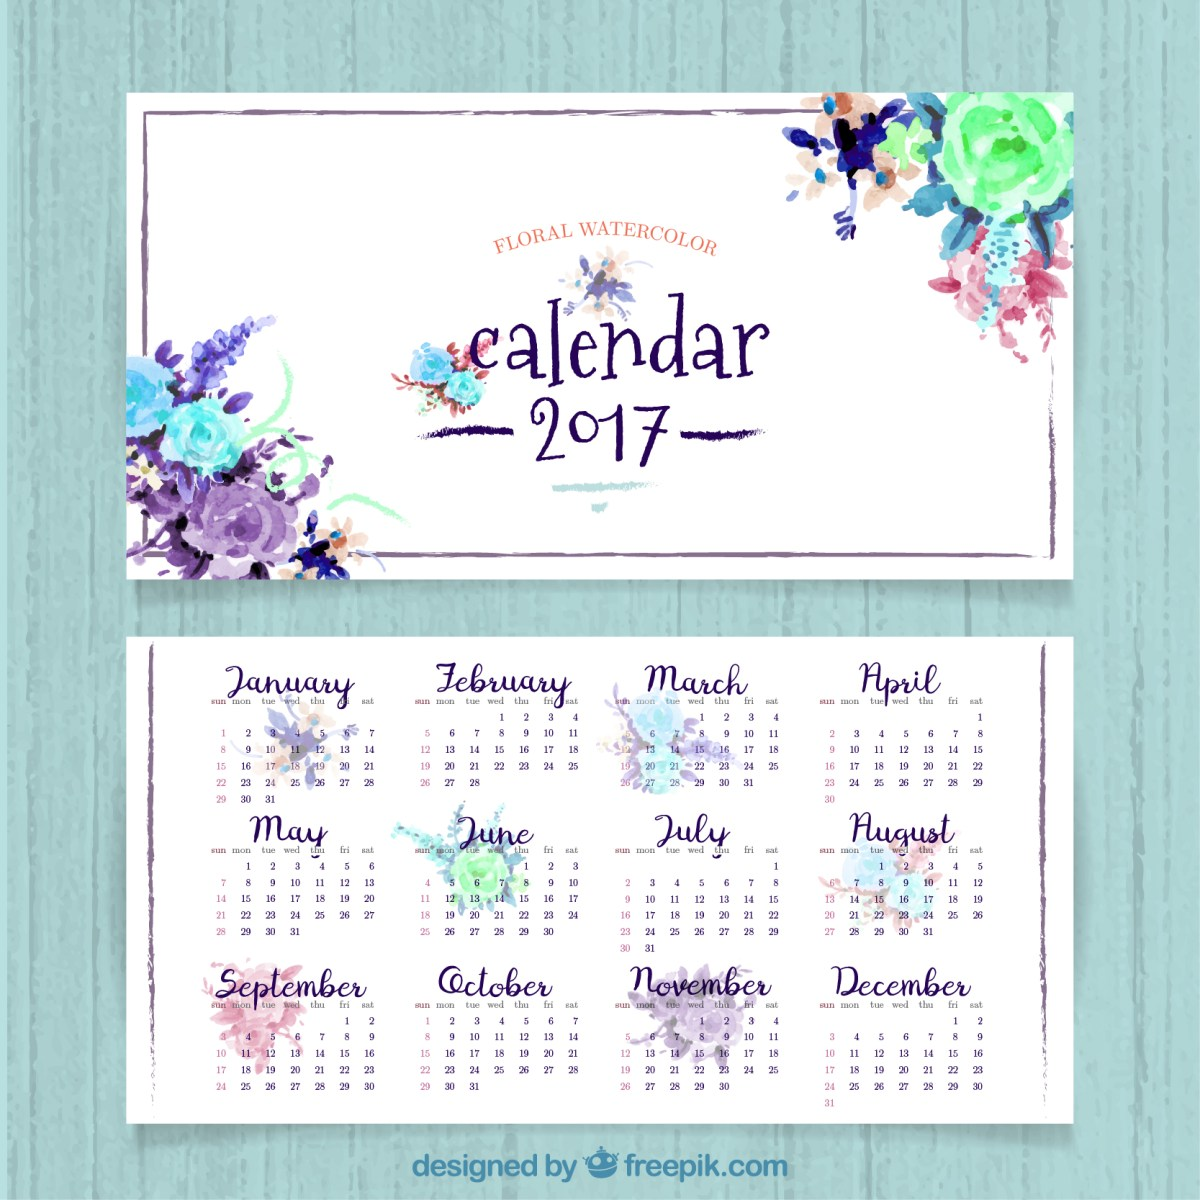 Descarga gratis un calendario 2017 para imprimir